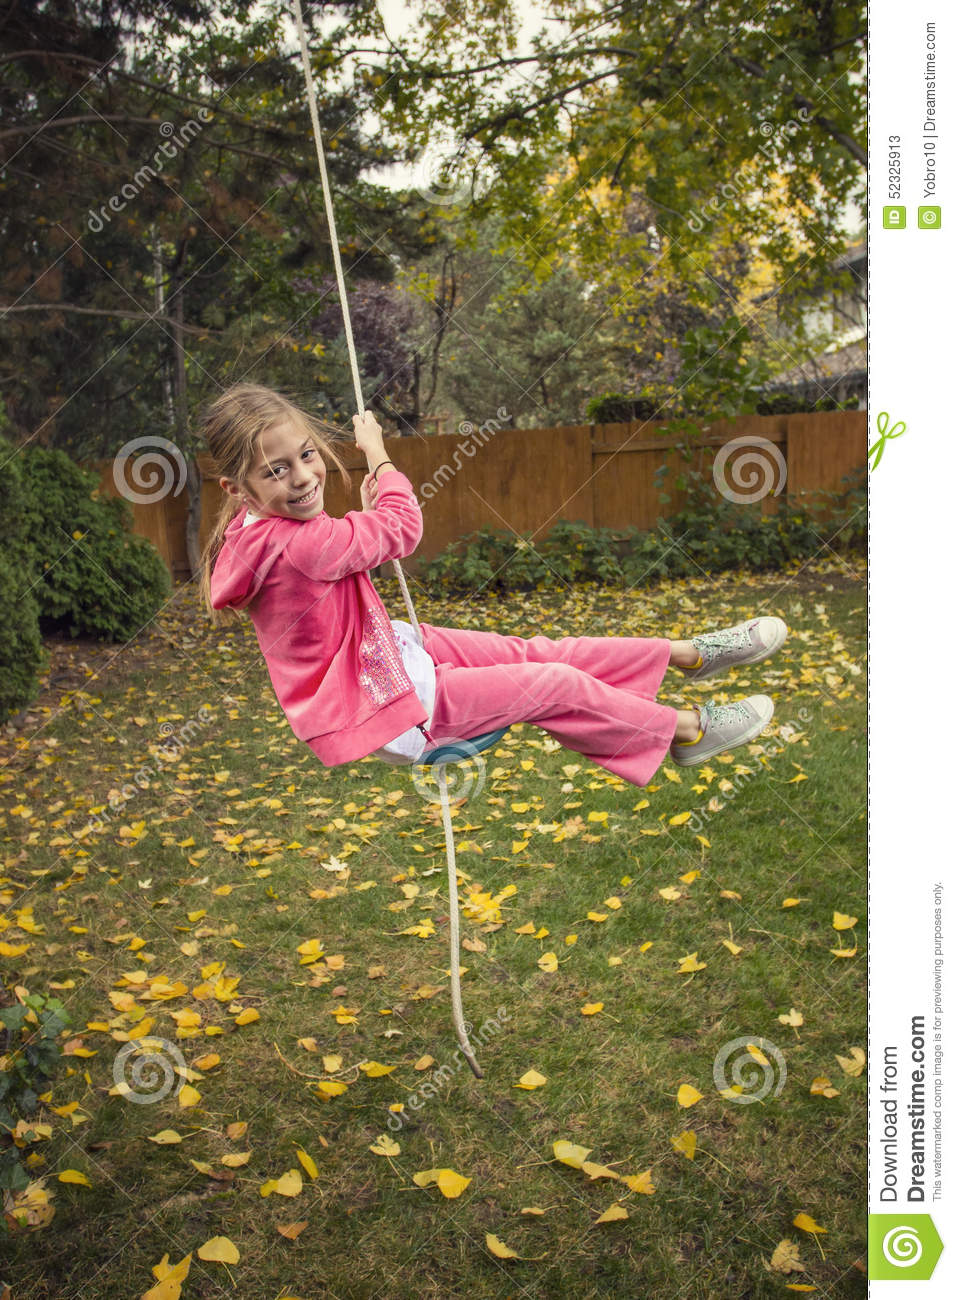 Cute Girl Playing On A Backyard Rope Swing Outdoors Stock ...